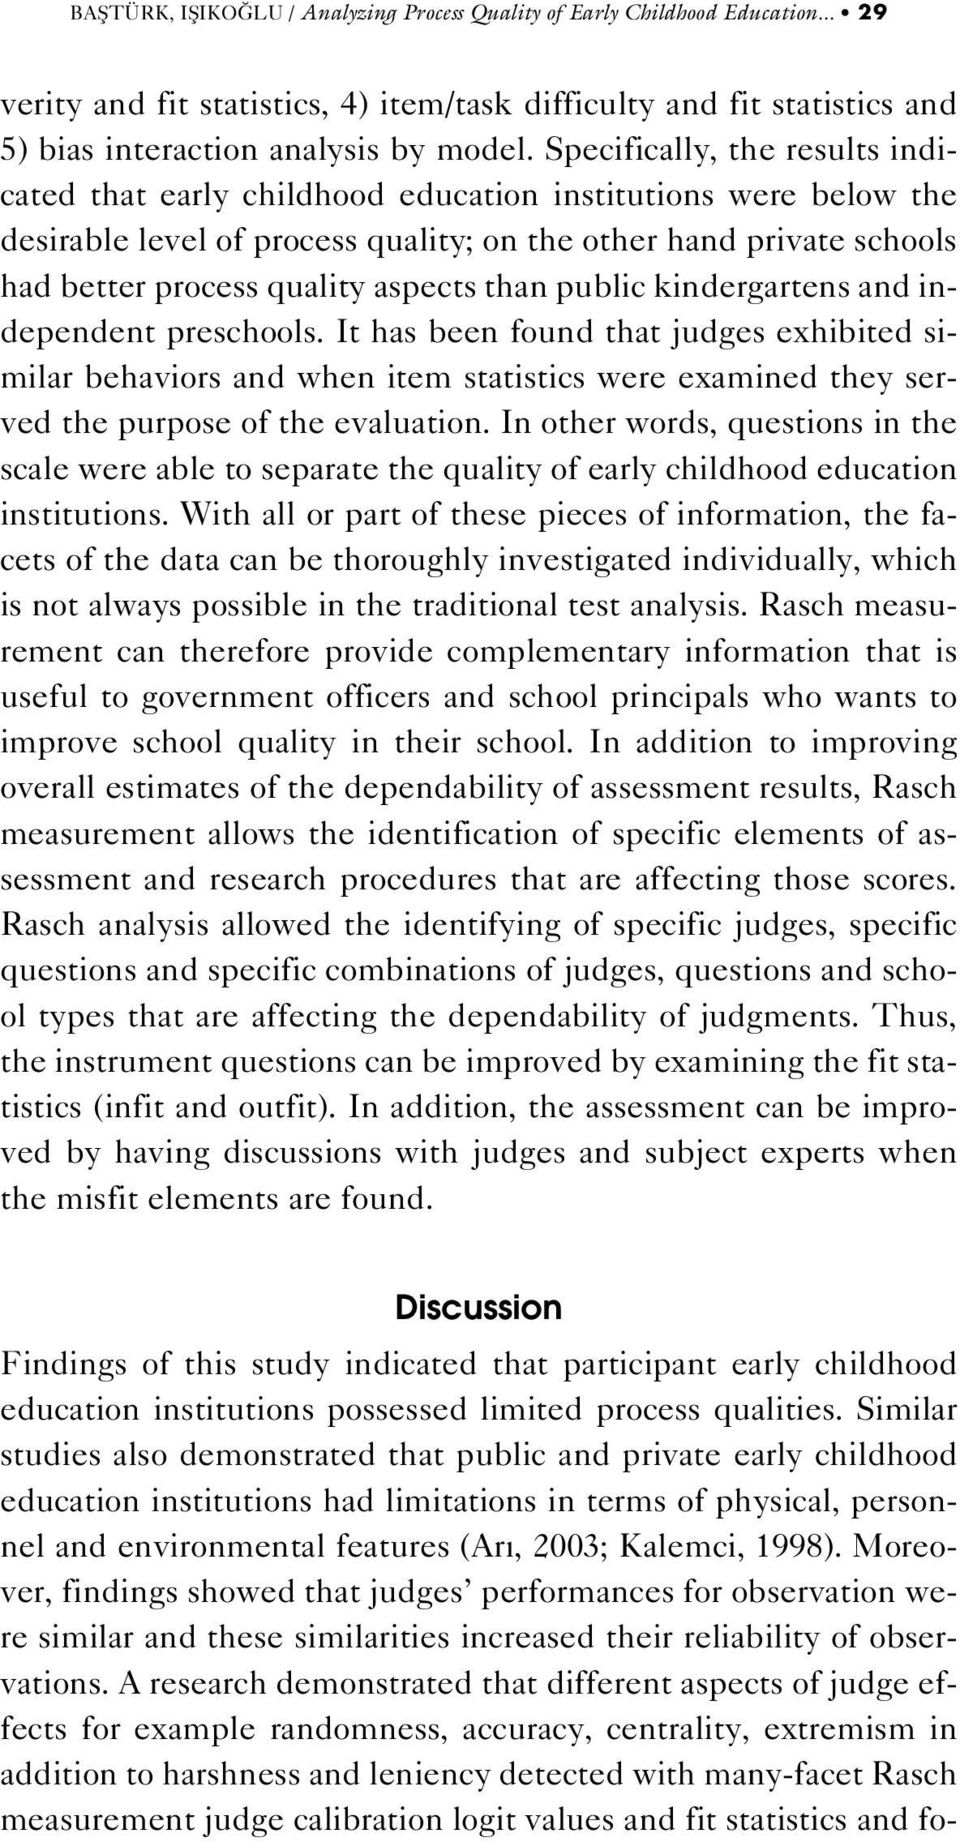 than public kindergartens and independent preschools. It has been found that judges exhibited similar behaviors and when item statistics were examined they served the purpose of the evaluation.